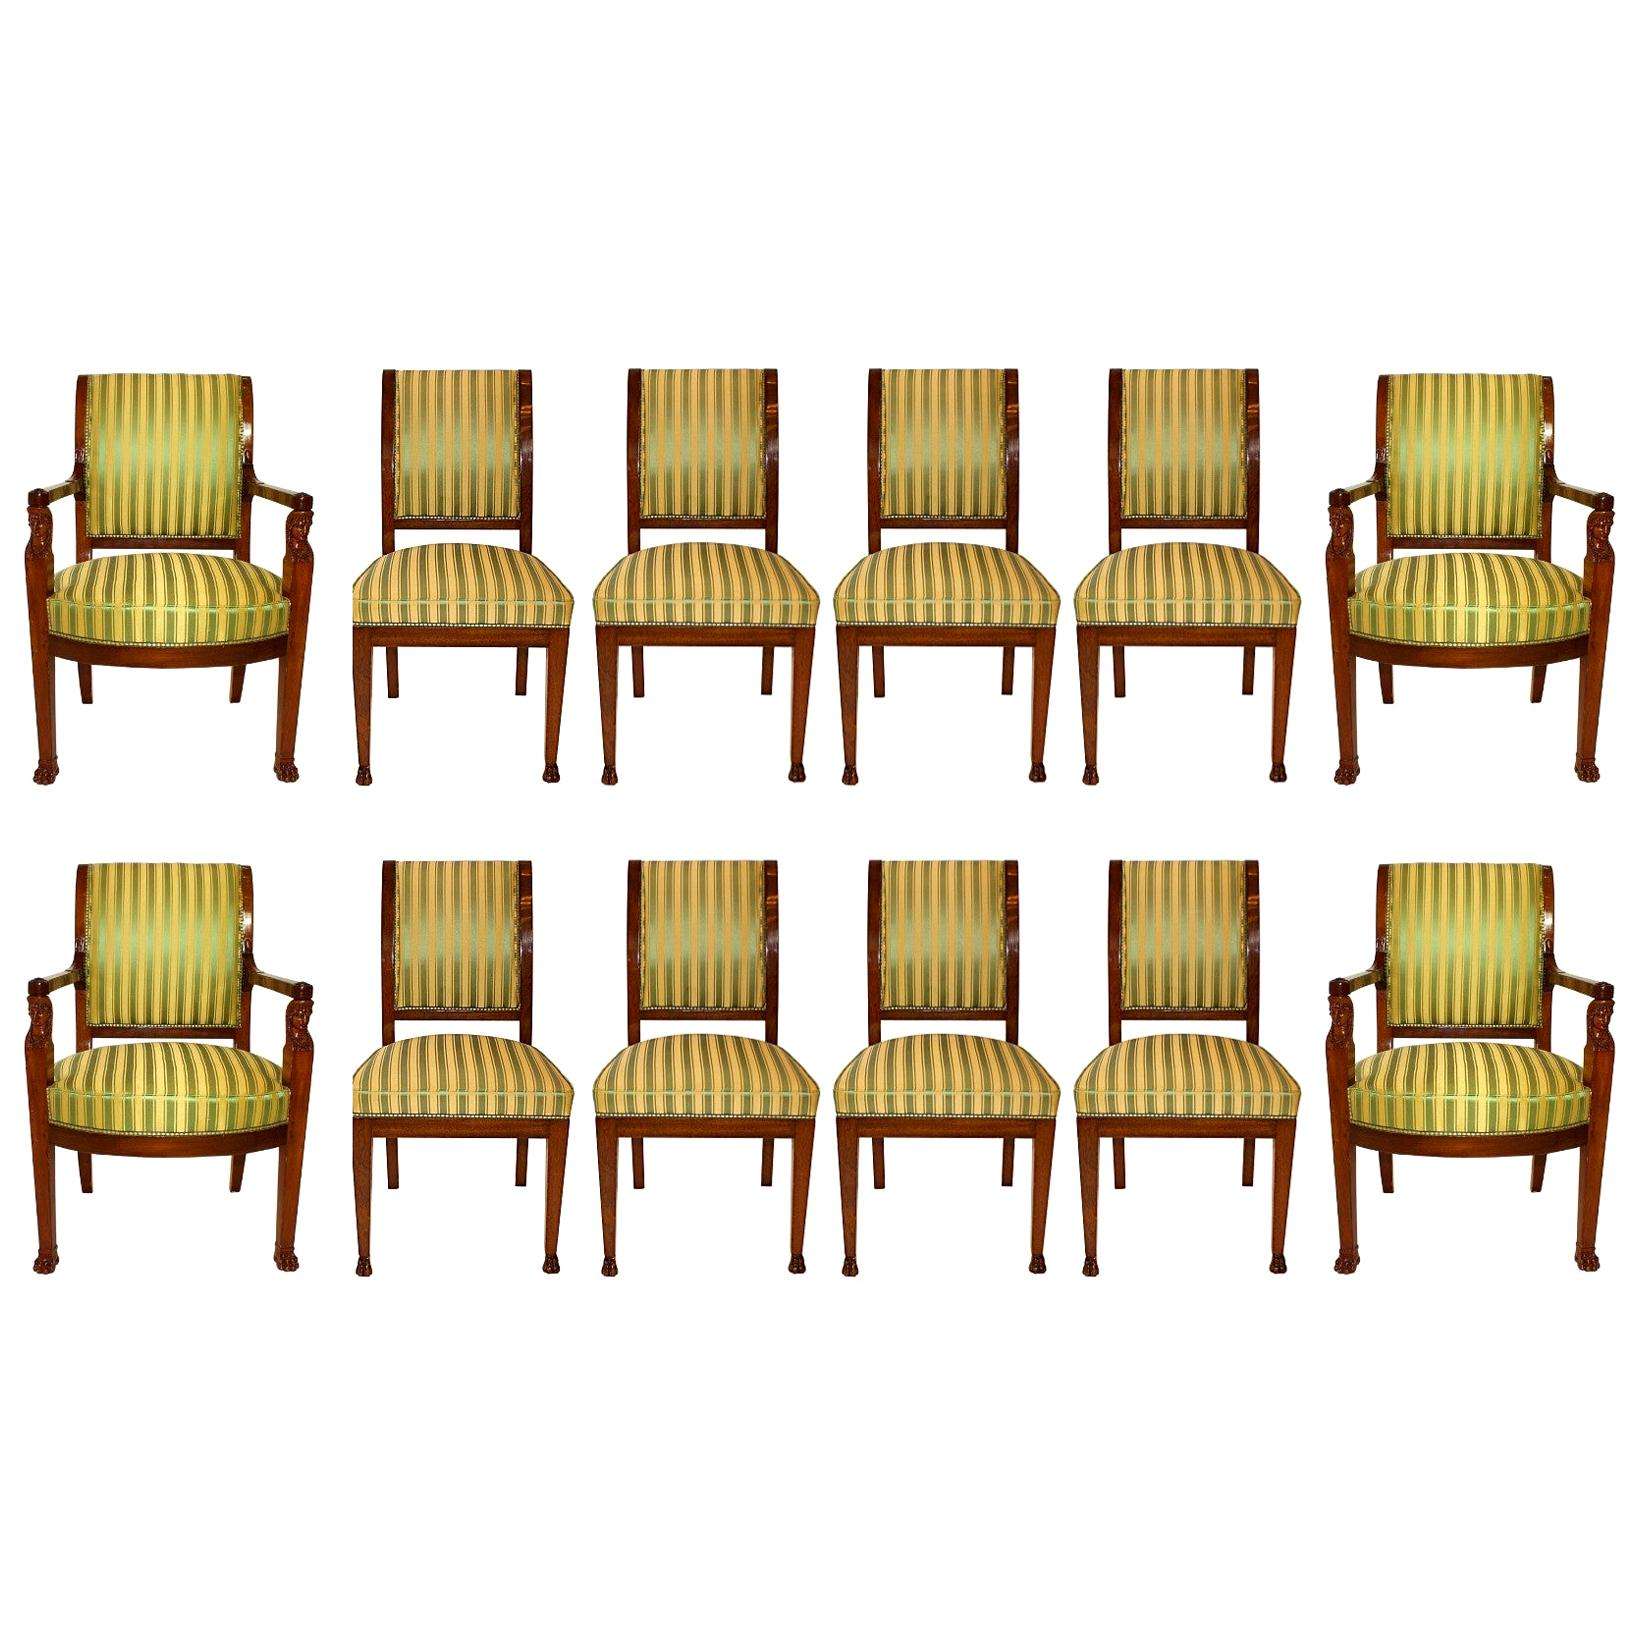 Important Set of 12 French Empire Mahogany Dining Chairs, Jacob Freres